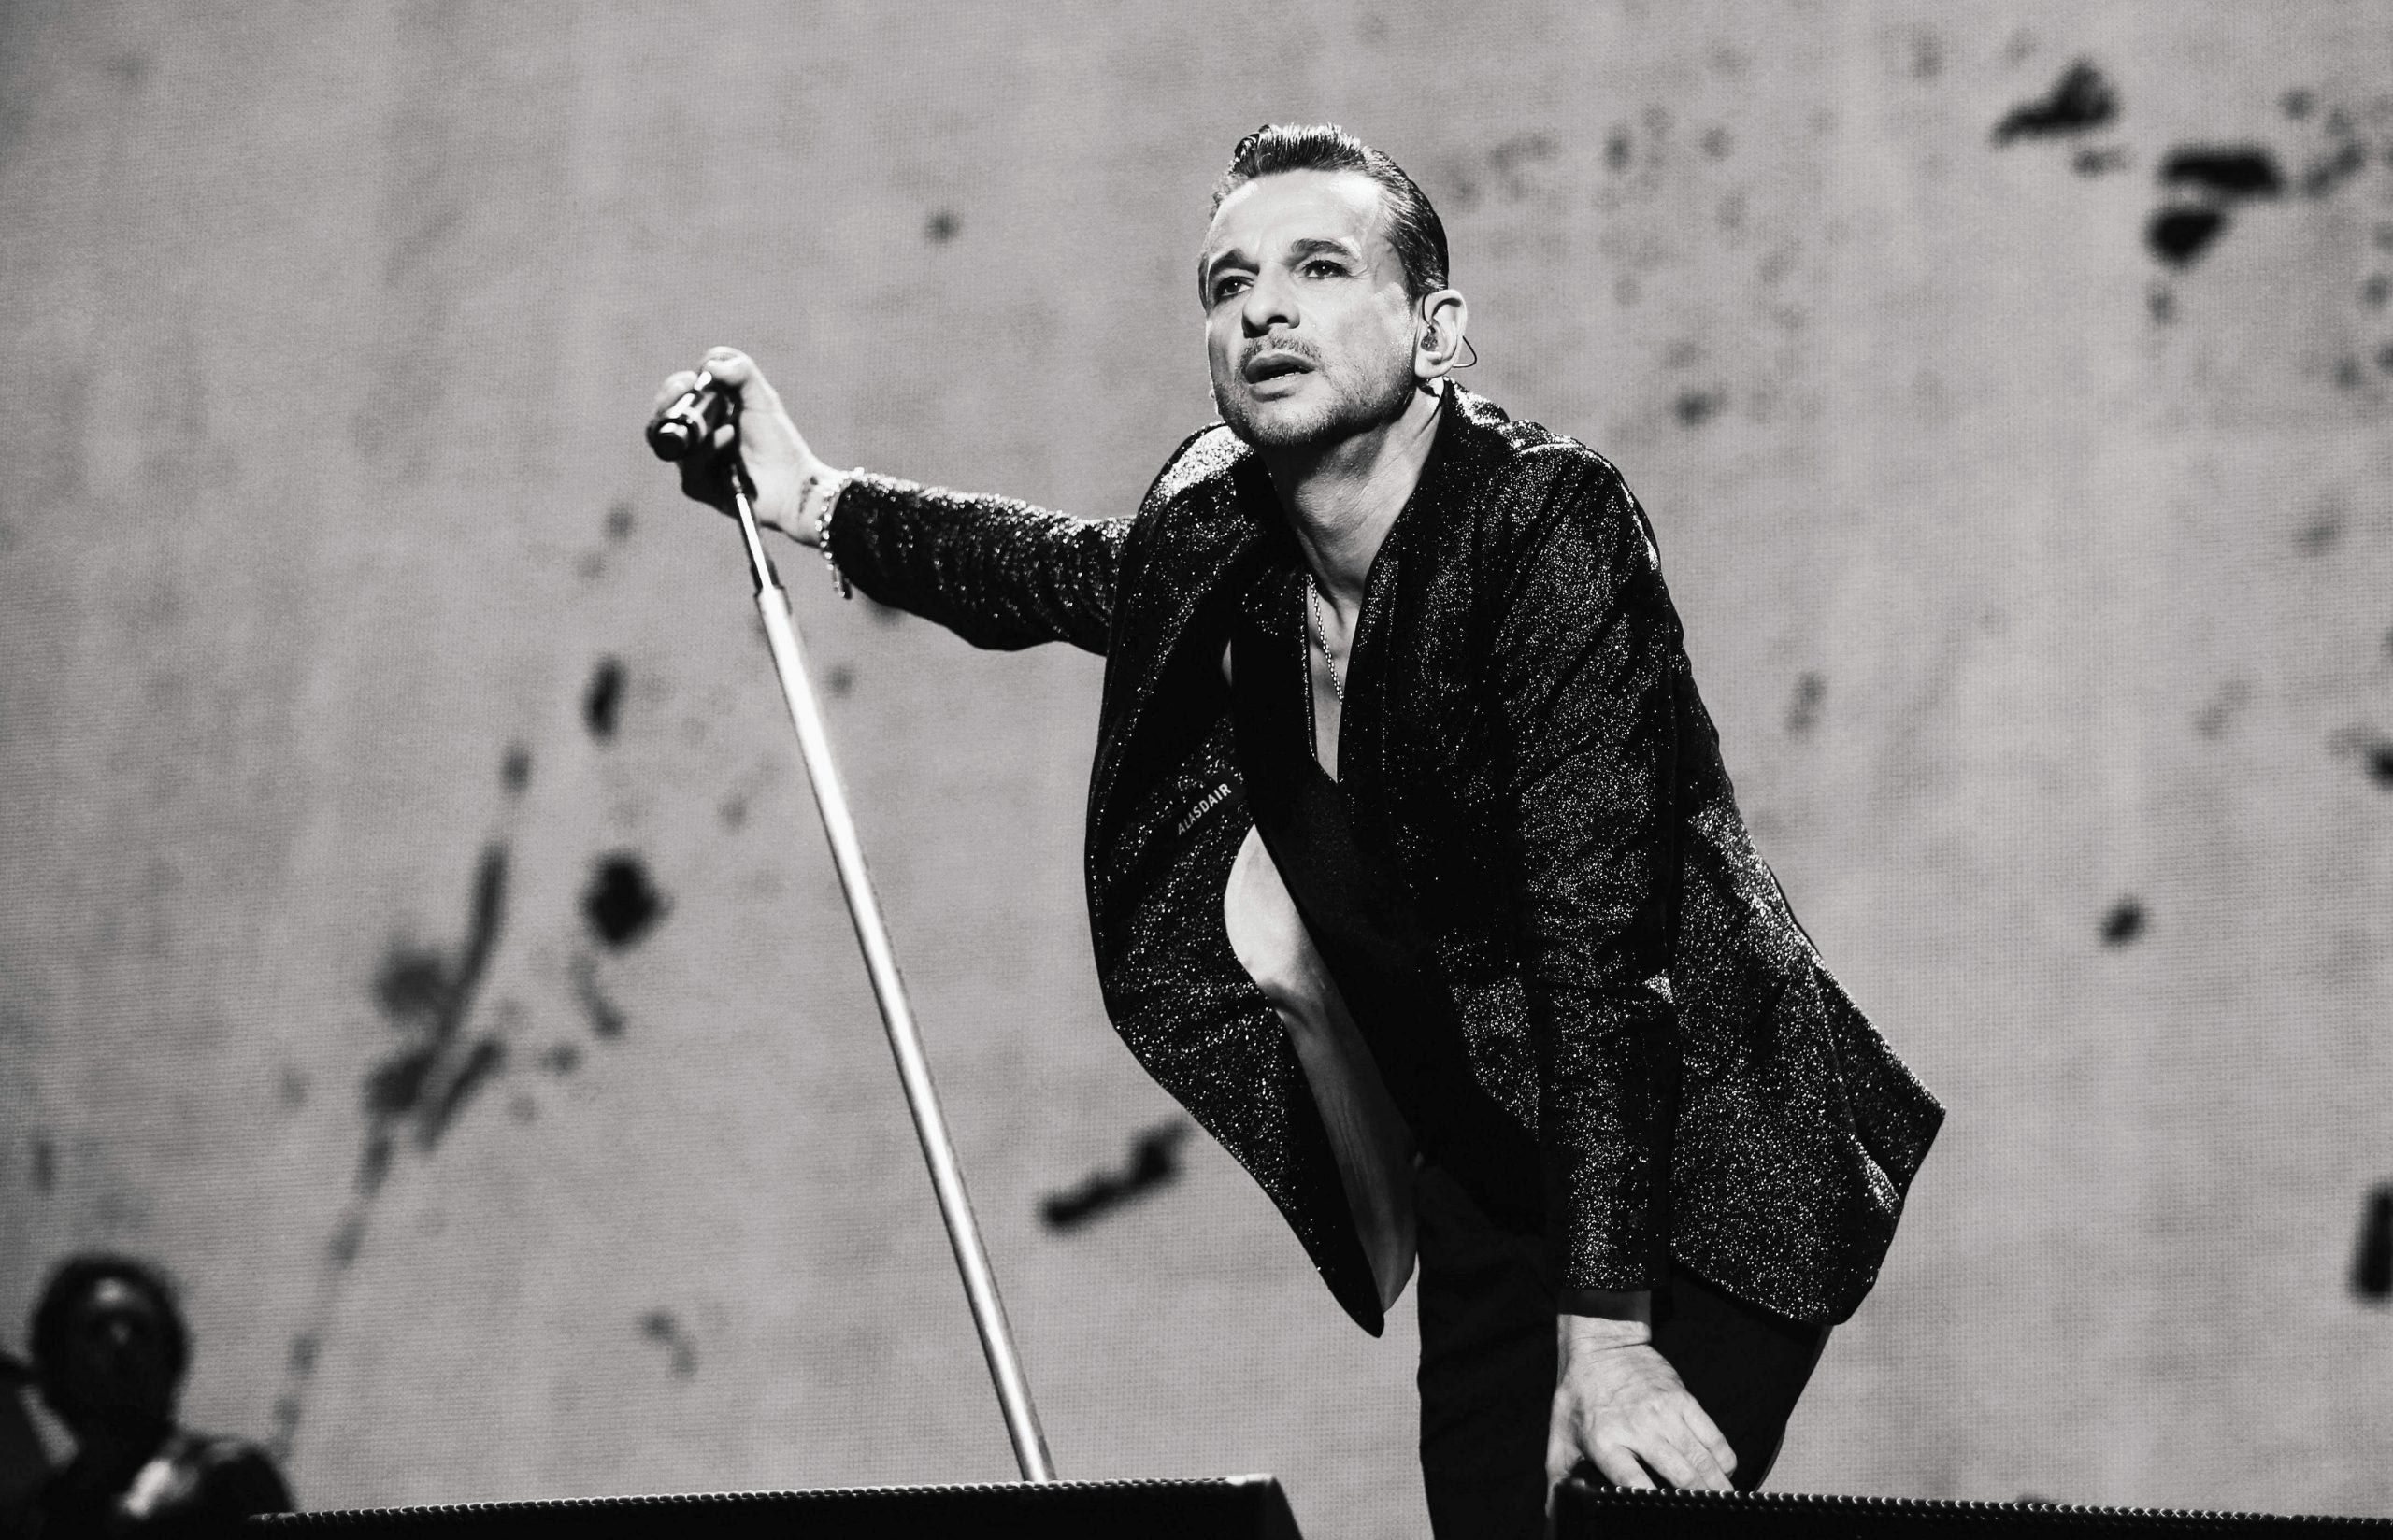 Depeche Mode's Dave Gahan: why I don't understand my own band